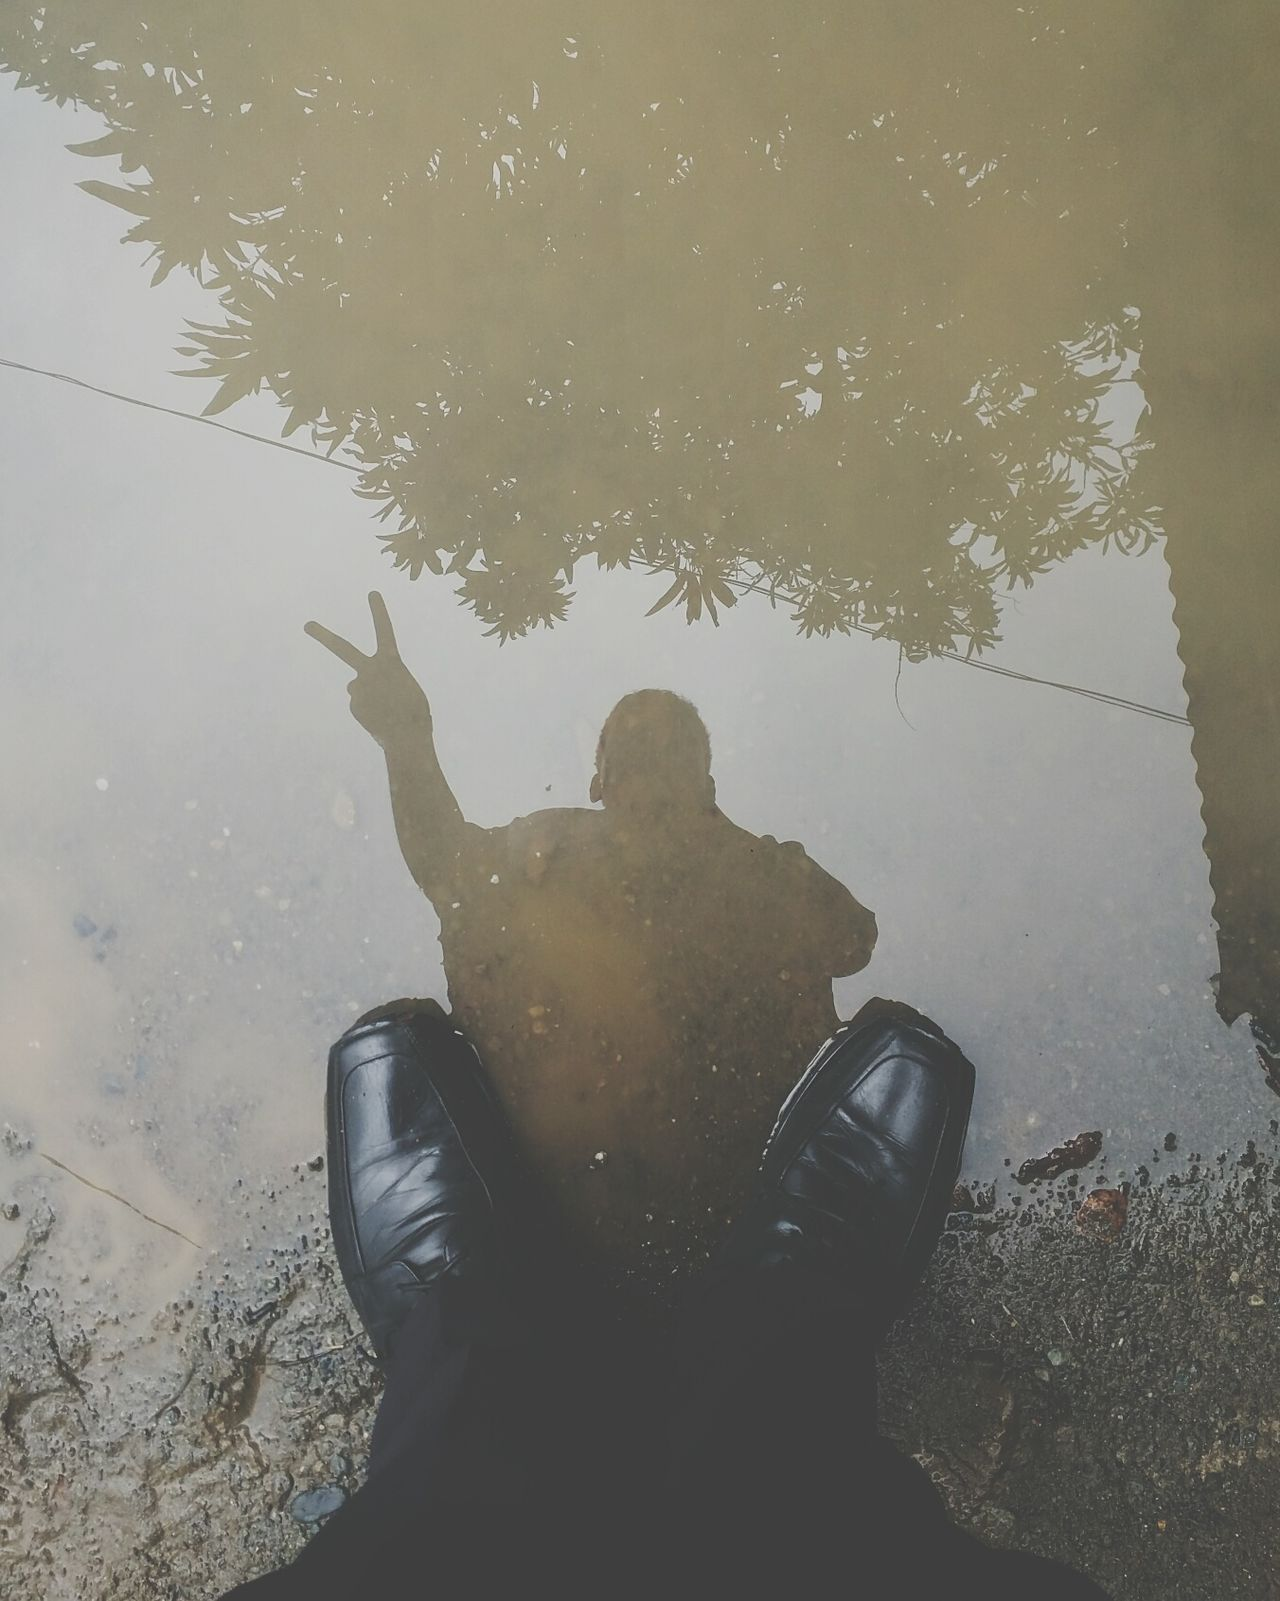 """Be kind to your knees, you'll miss them when they're gone"" -Bas Luhrmann (wear sunscreen) Water Reflection Low Section Puddle Person Lifestyles Footwear Leisure Activity High Angle View Day Standing Water Human Foot Outdoors Personal Perspective Sky Tranquility Nature Collection Eyeem Philippines EyeEm Feet Shoes Leather"